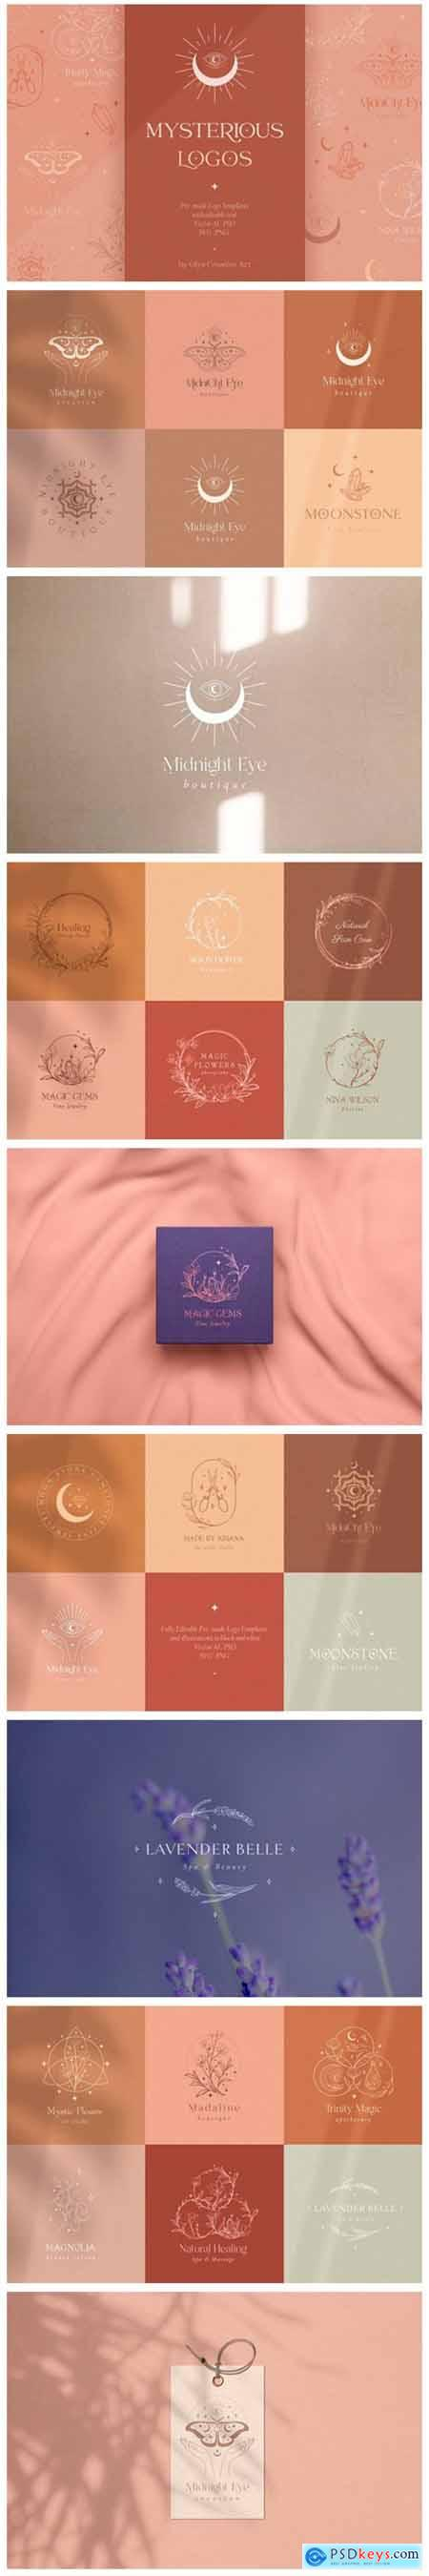 Logo Templates Collection Mystic